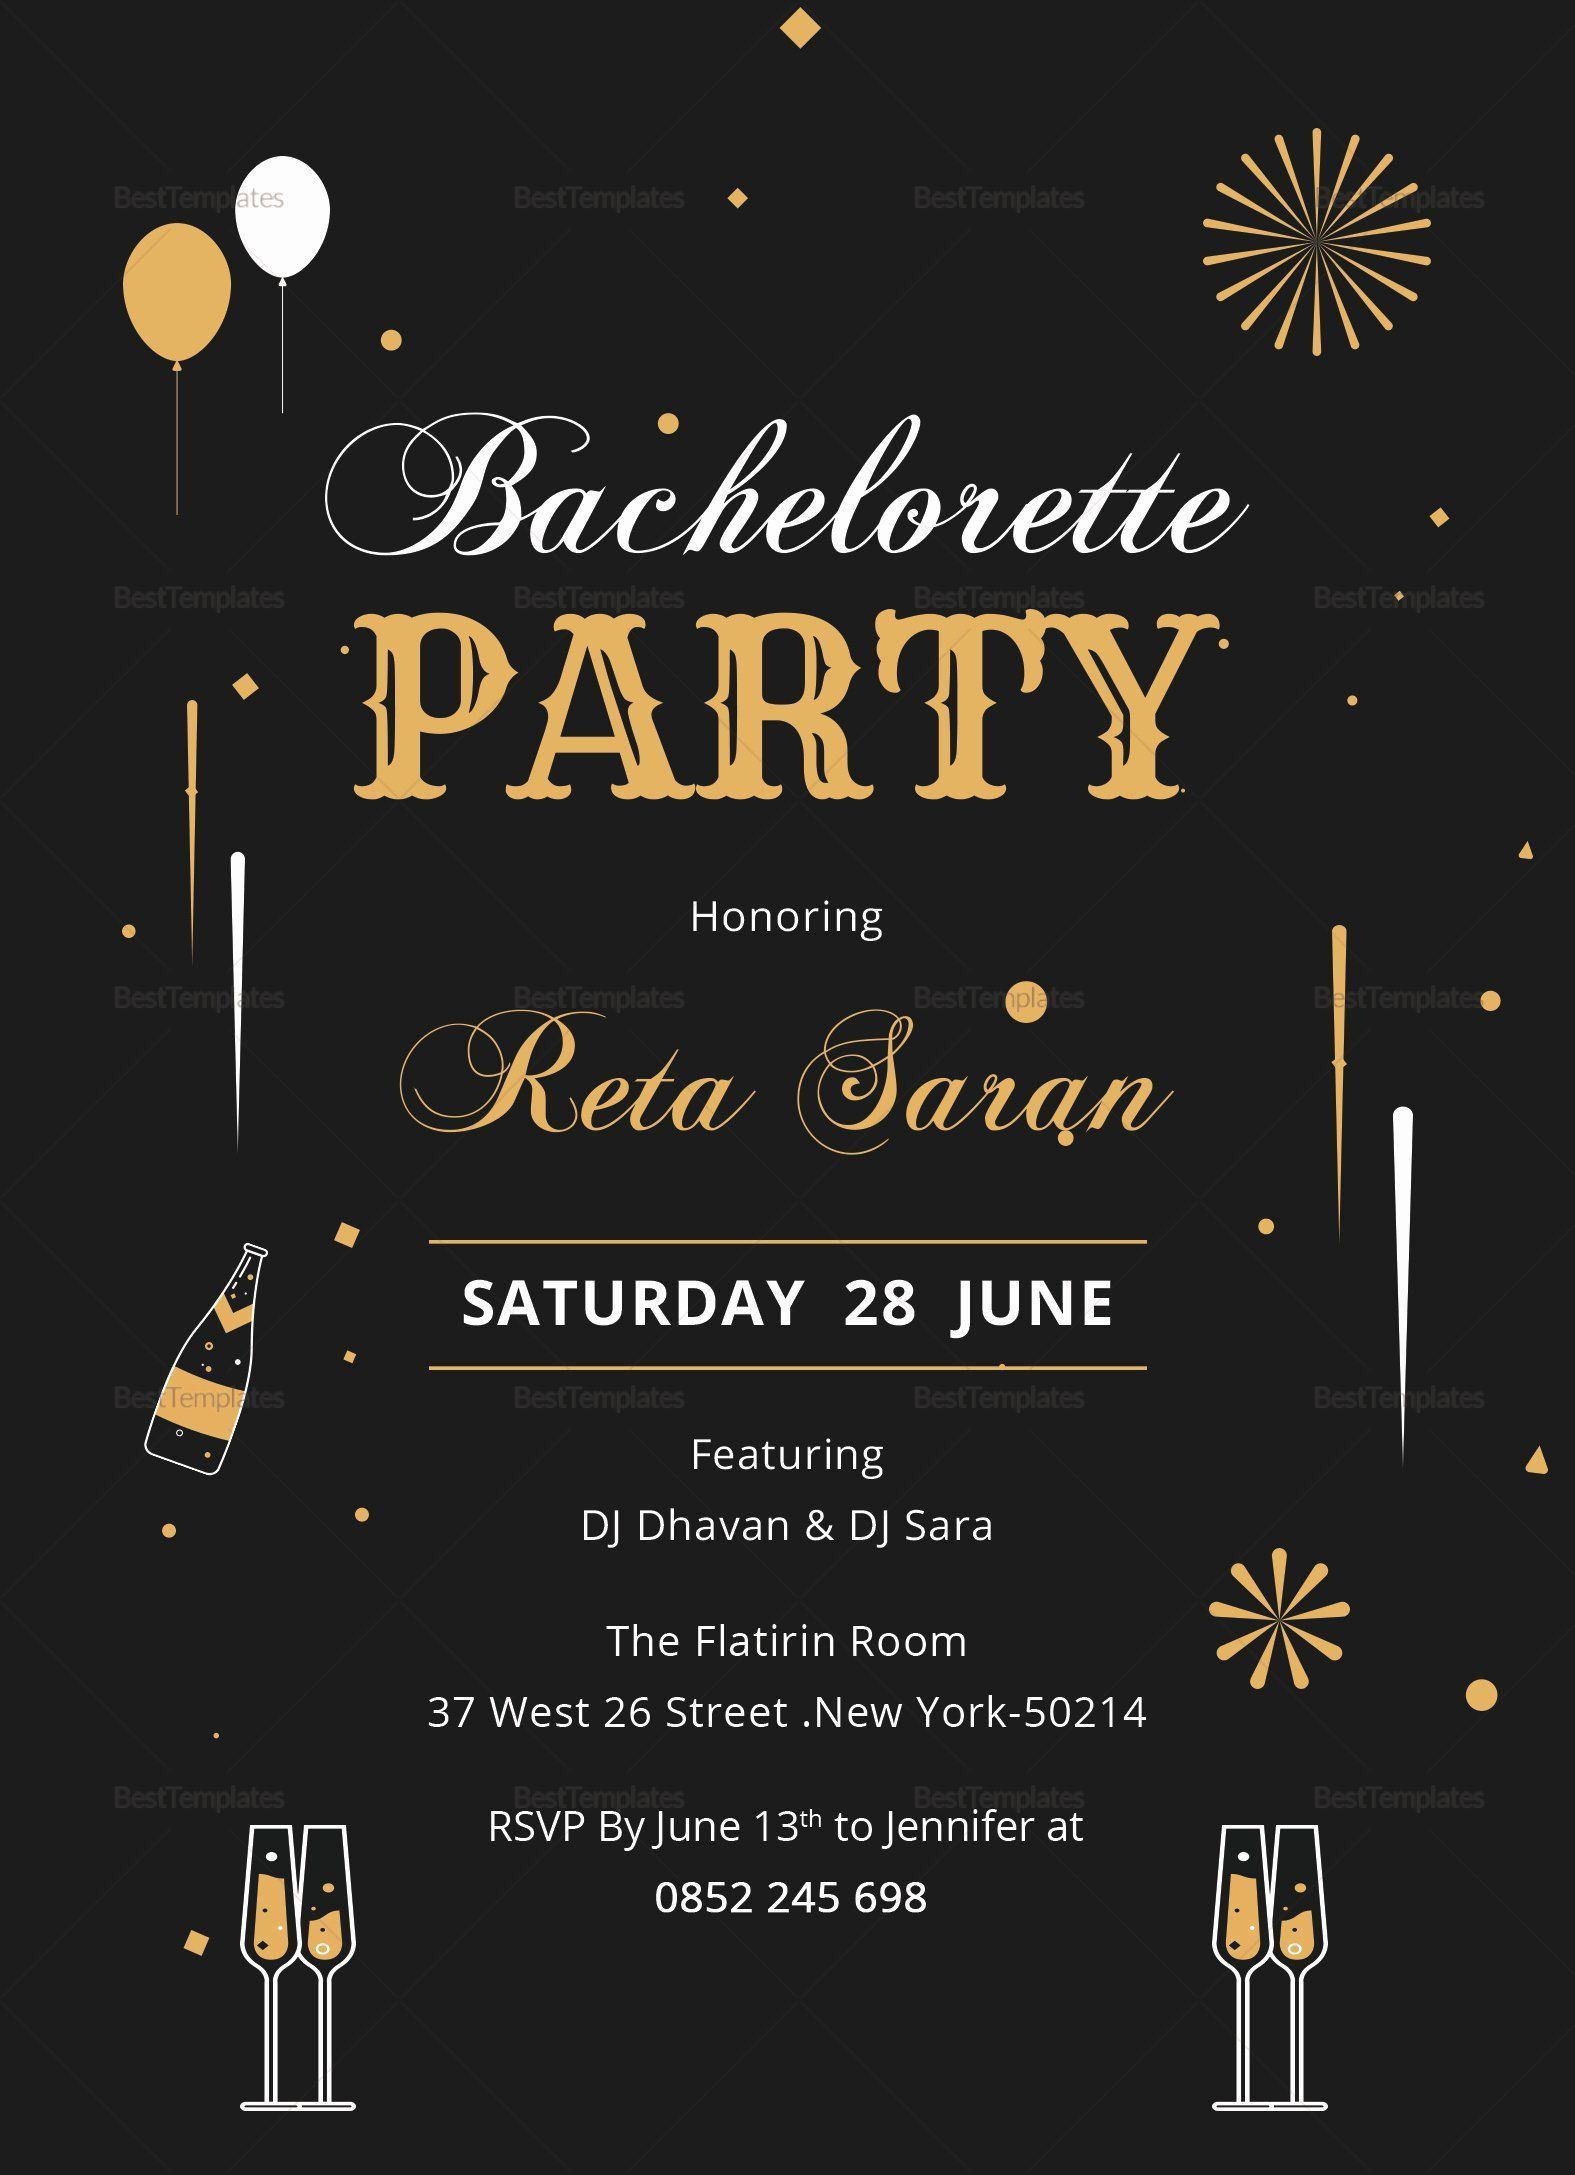 000 Stunning Bachelorette Party Invitation Template Word Free Photo Full